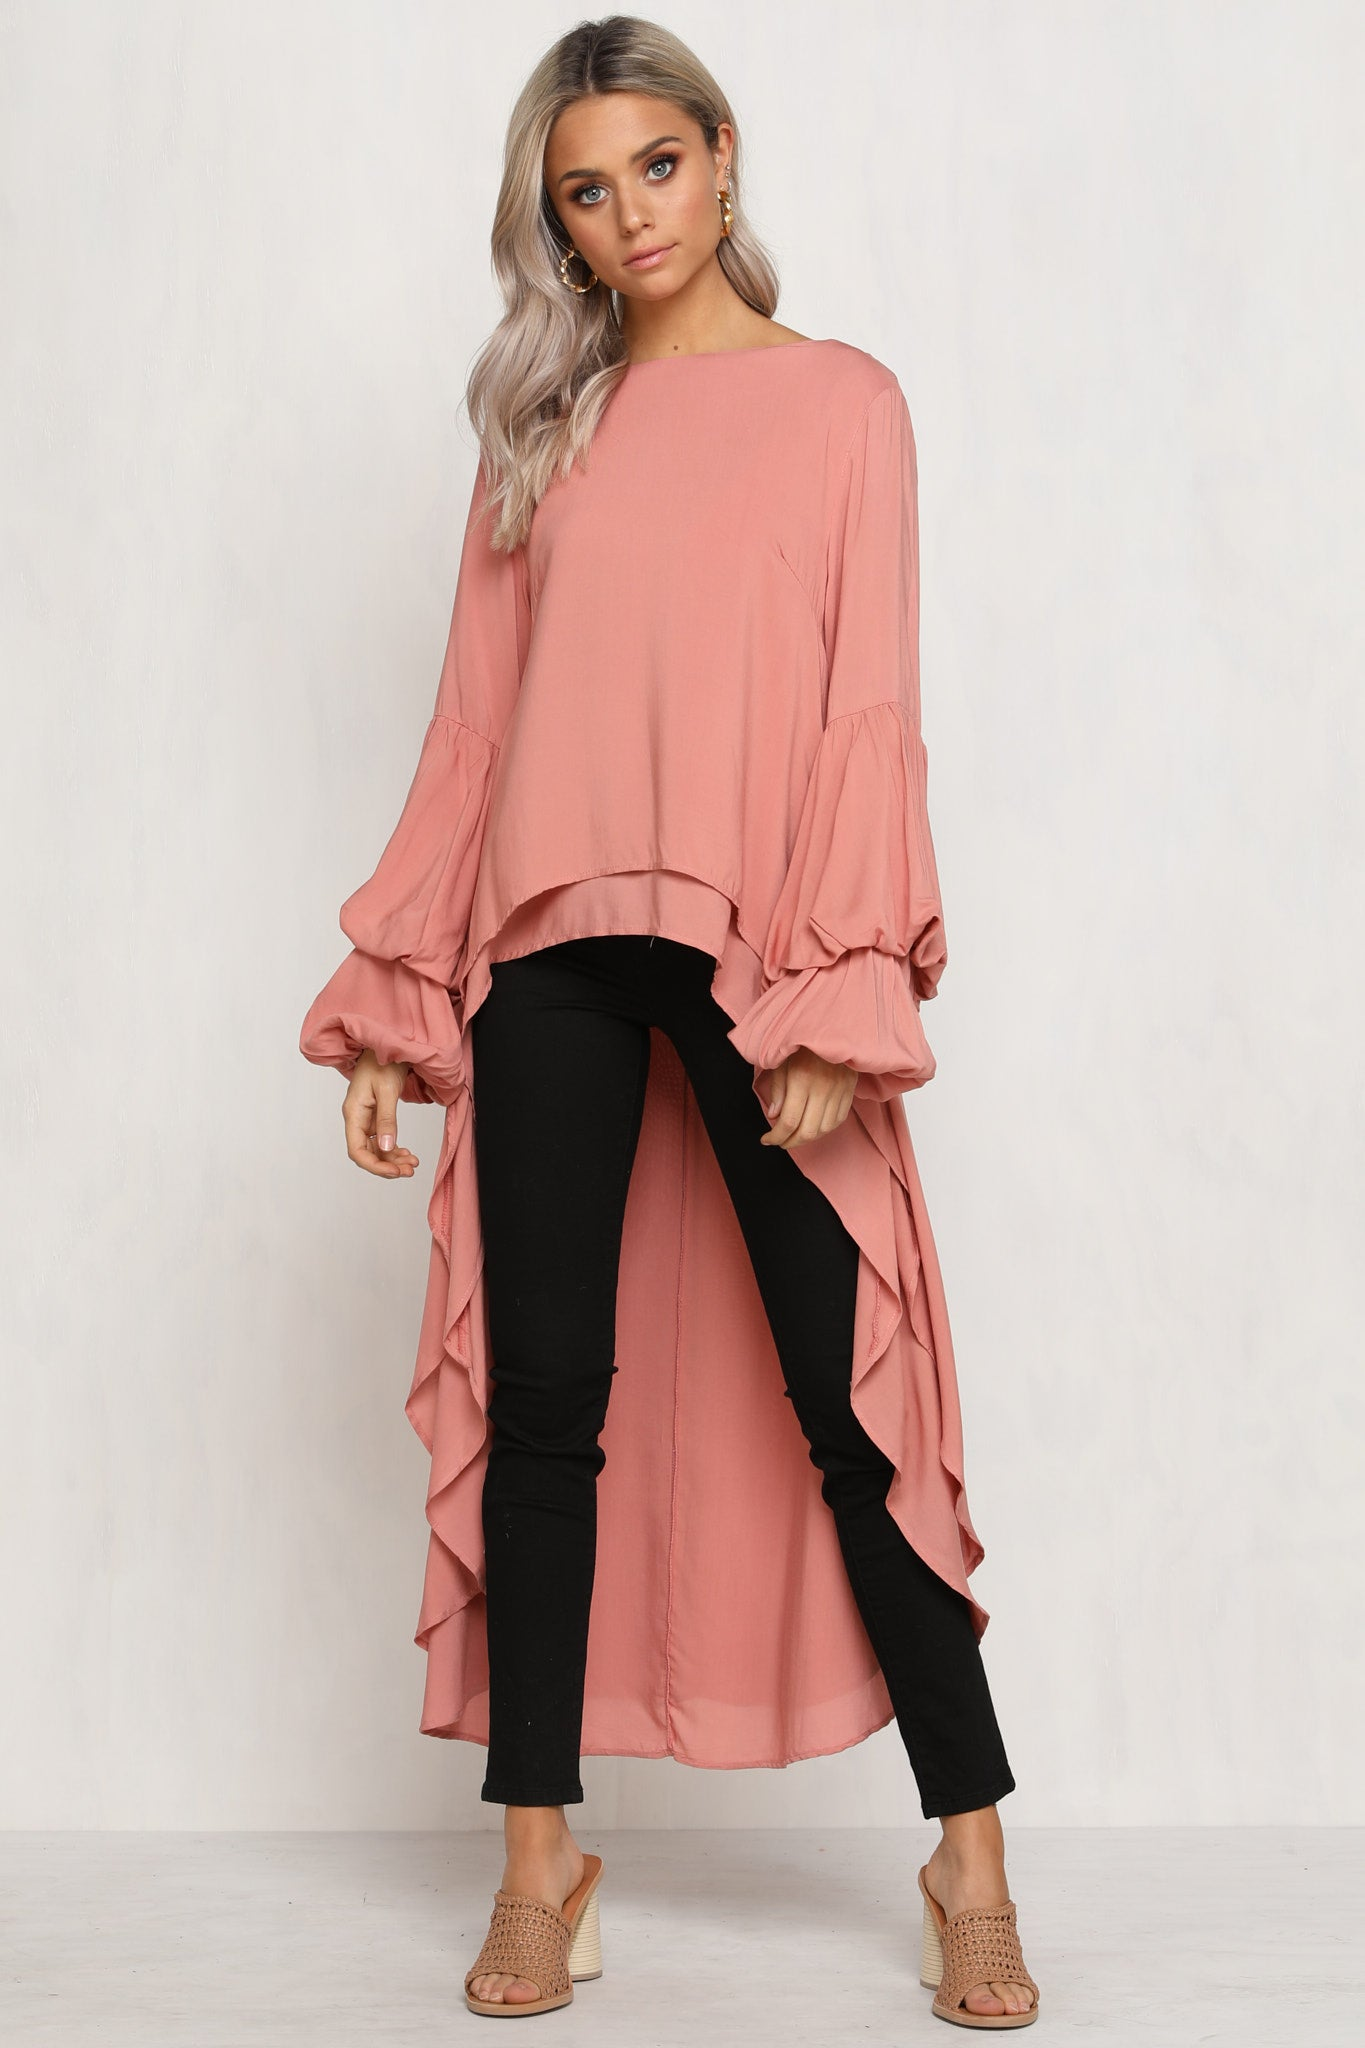 Hand In Hand Top (Peach)